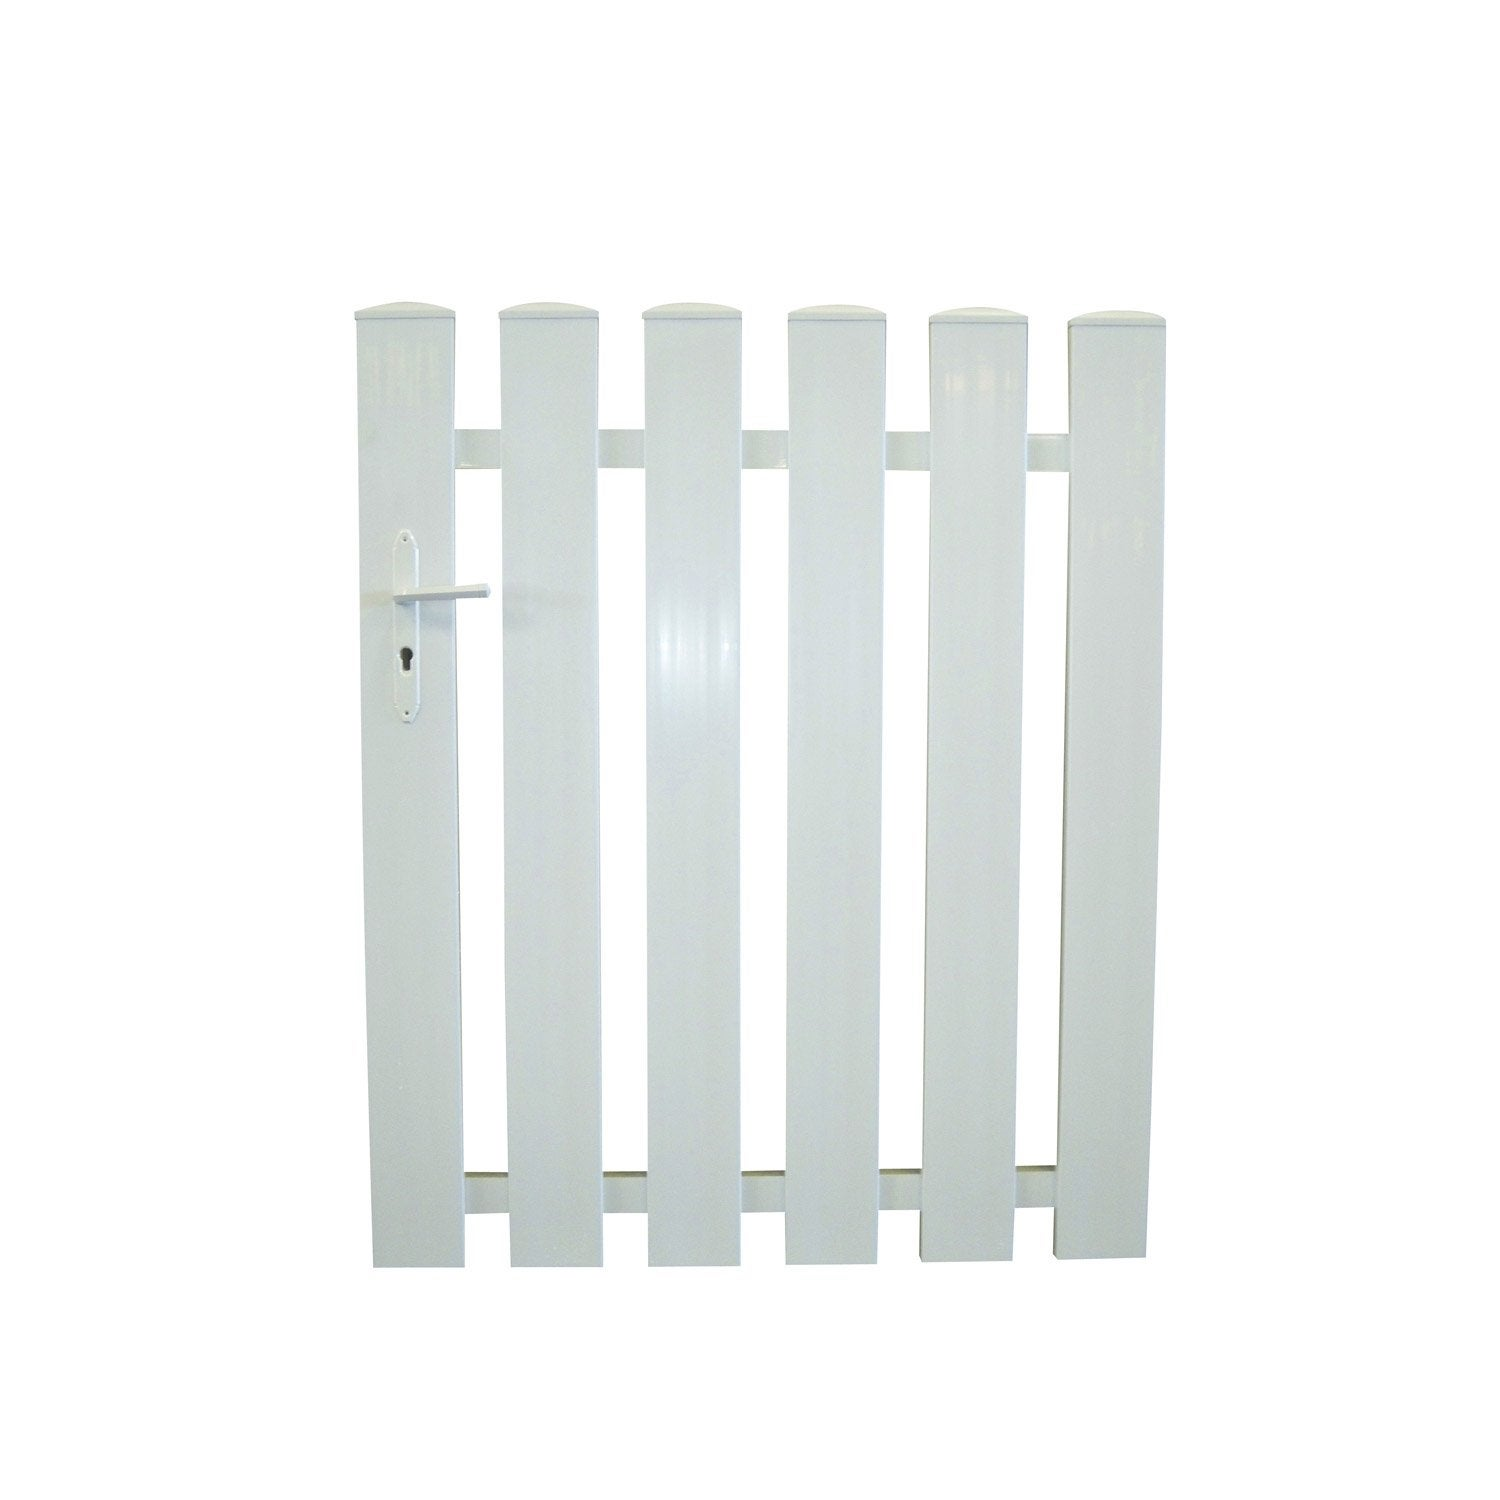 Portillon pvc blanc pas cher for Portillon pas cher